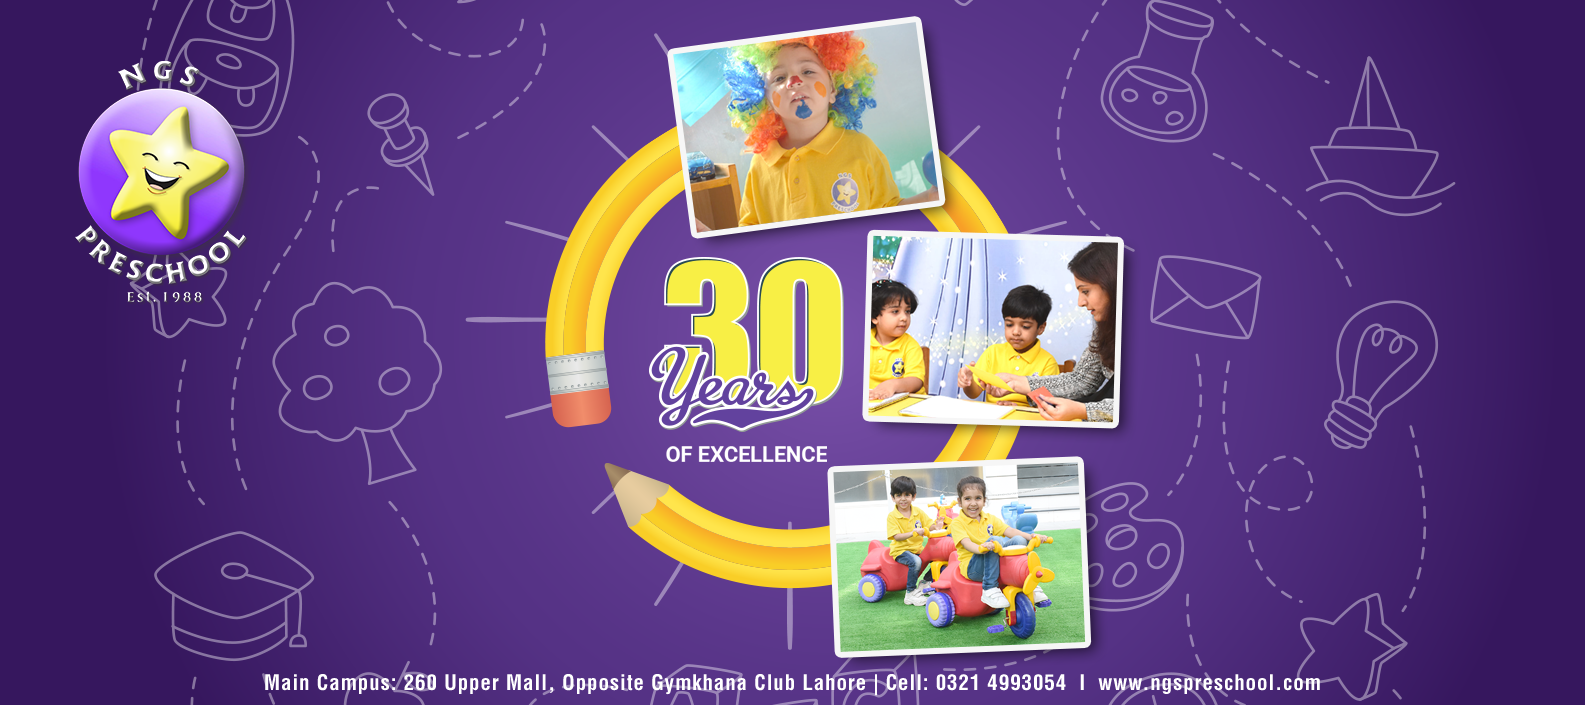 About Us - NGS Preschool is one of the best preschools in Lahore